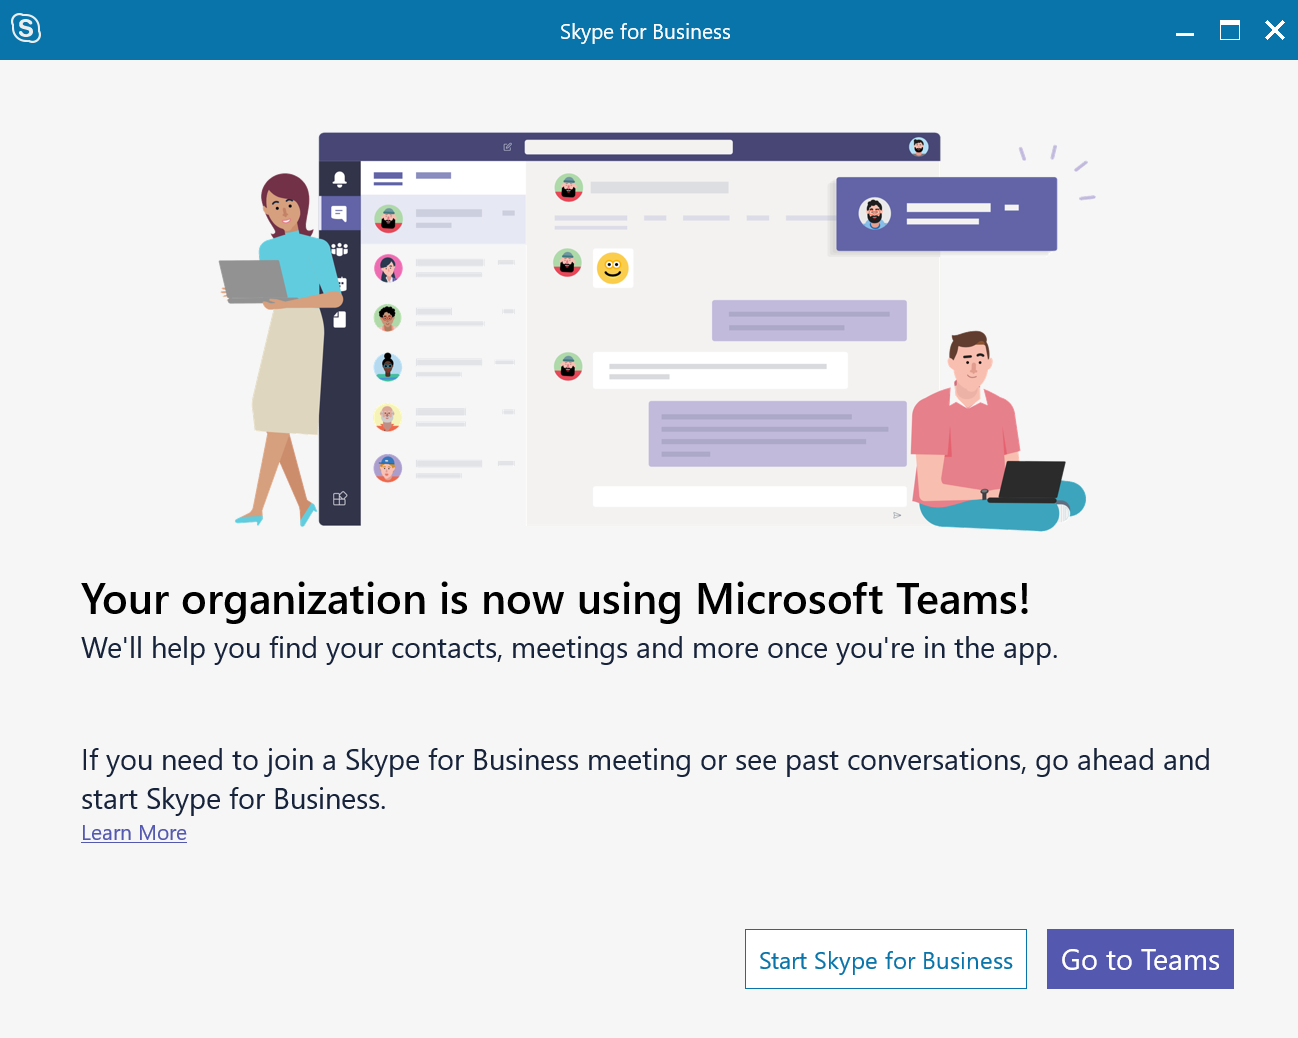 Enabling Skype for Business in a new Teams-Only Office